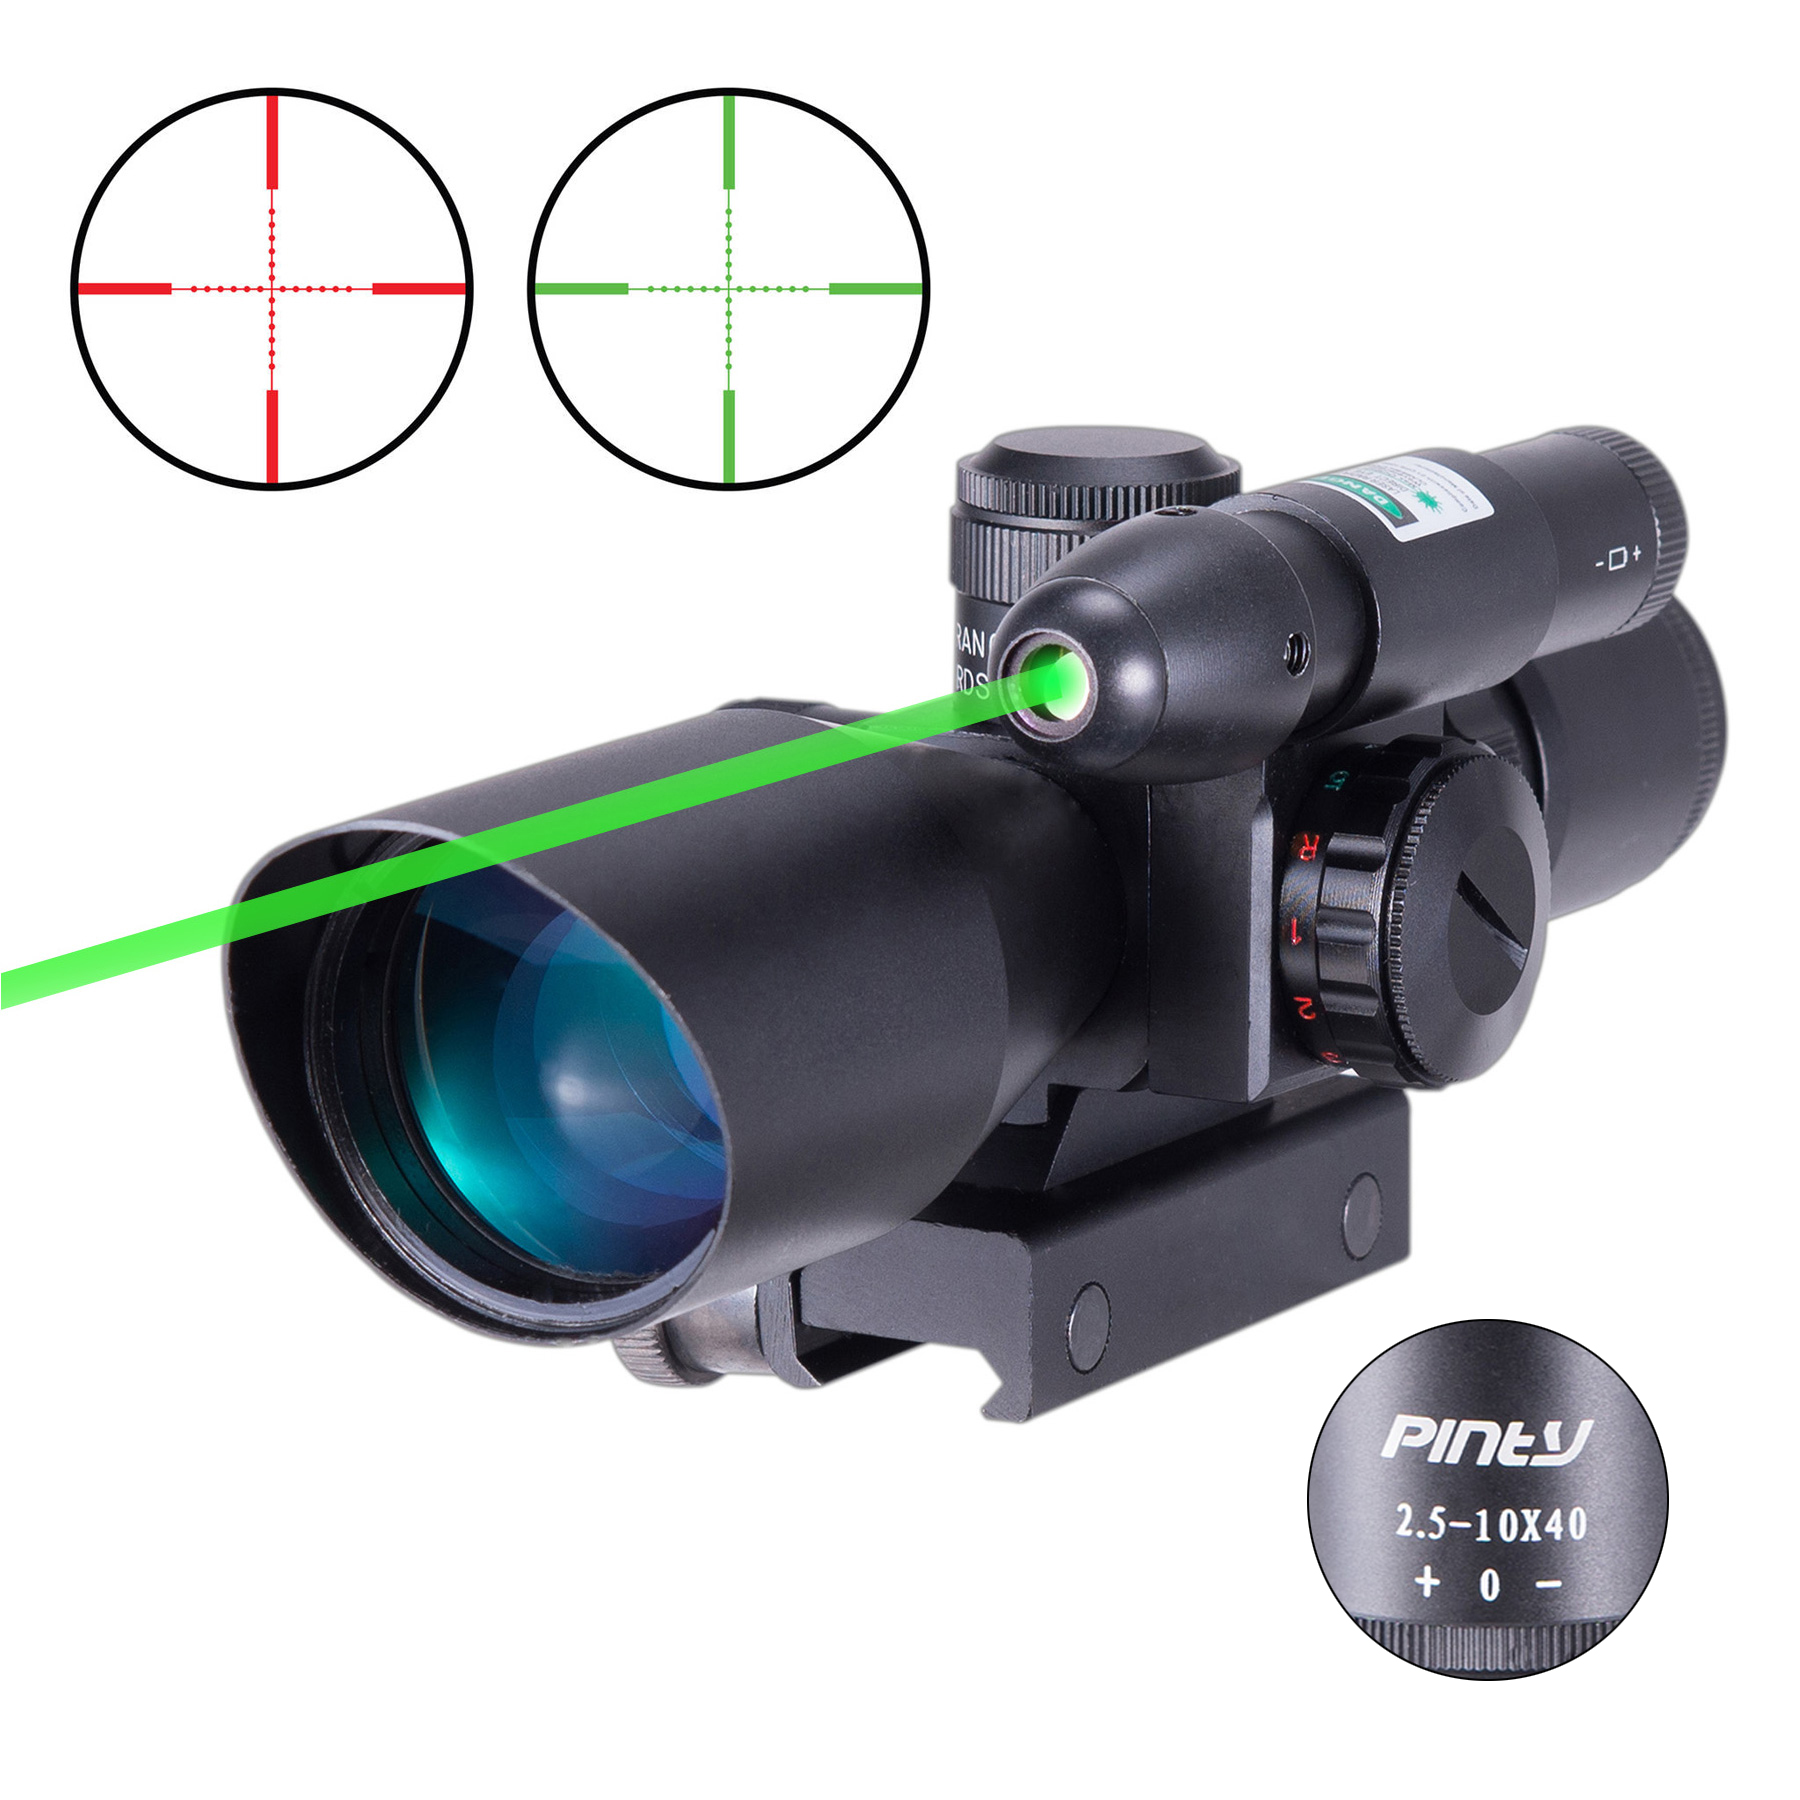 Pinty 2-in-1 Combo 2.5-10x40 AOEG Illumination Tactical Mil-dot Riflescope with Green Laser Red Dot sight and 20mm Mount Rails